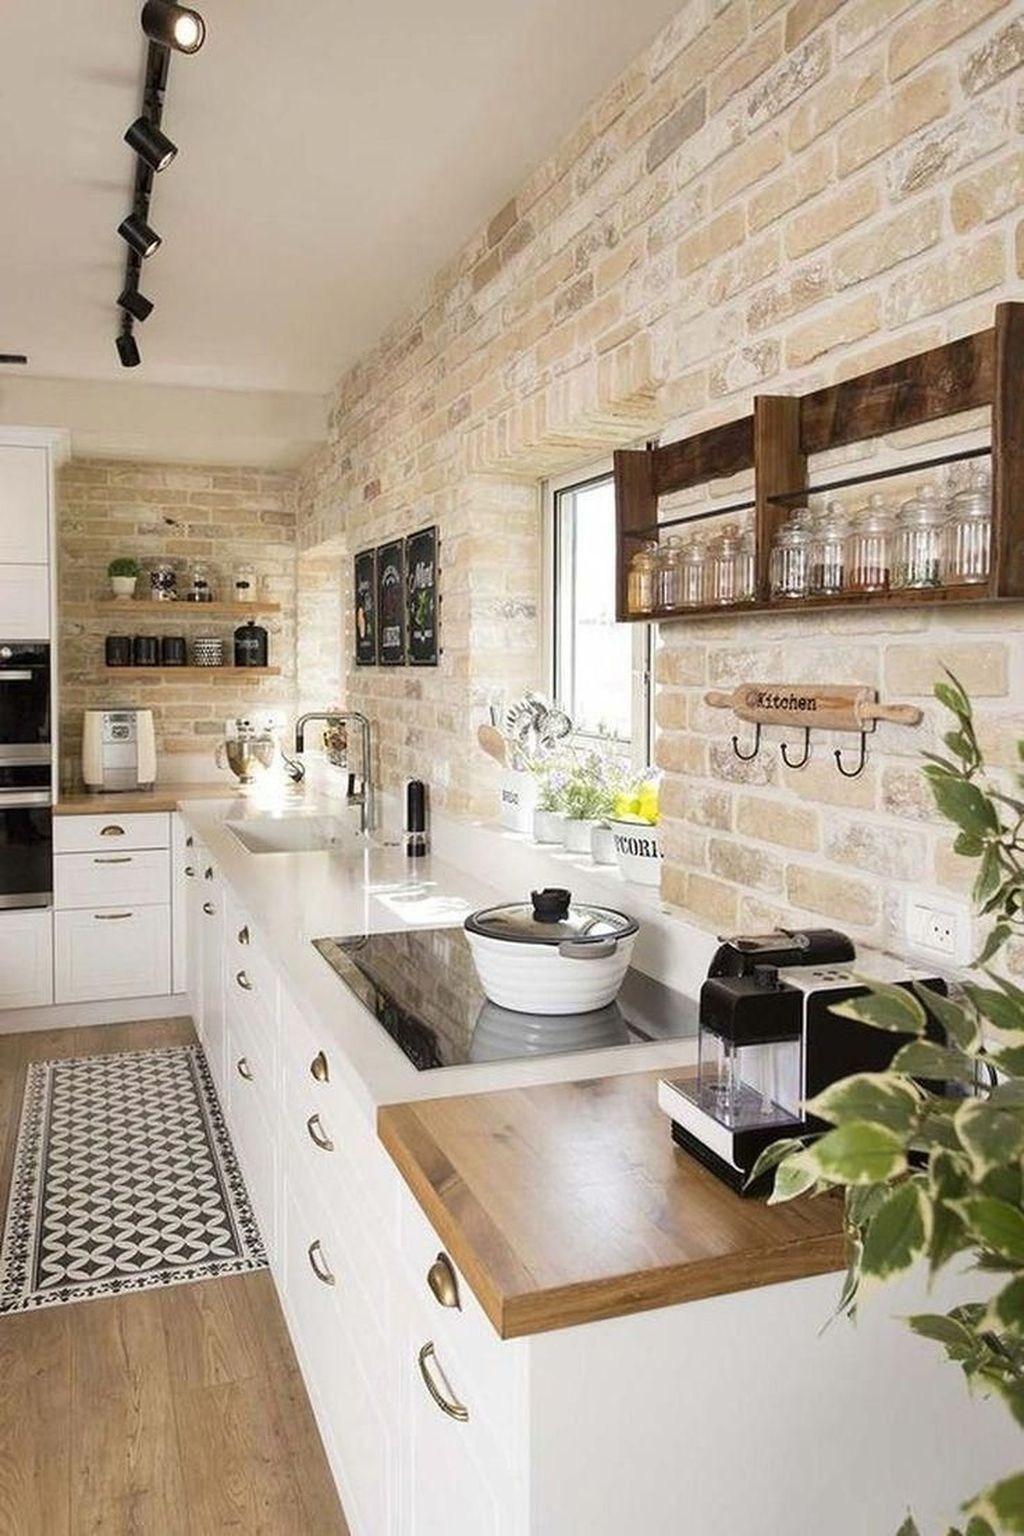 House design inspiring traditional farmhouse kitchen decoration ideas kitchendesignblog also best images in rh pinterest